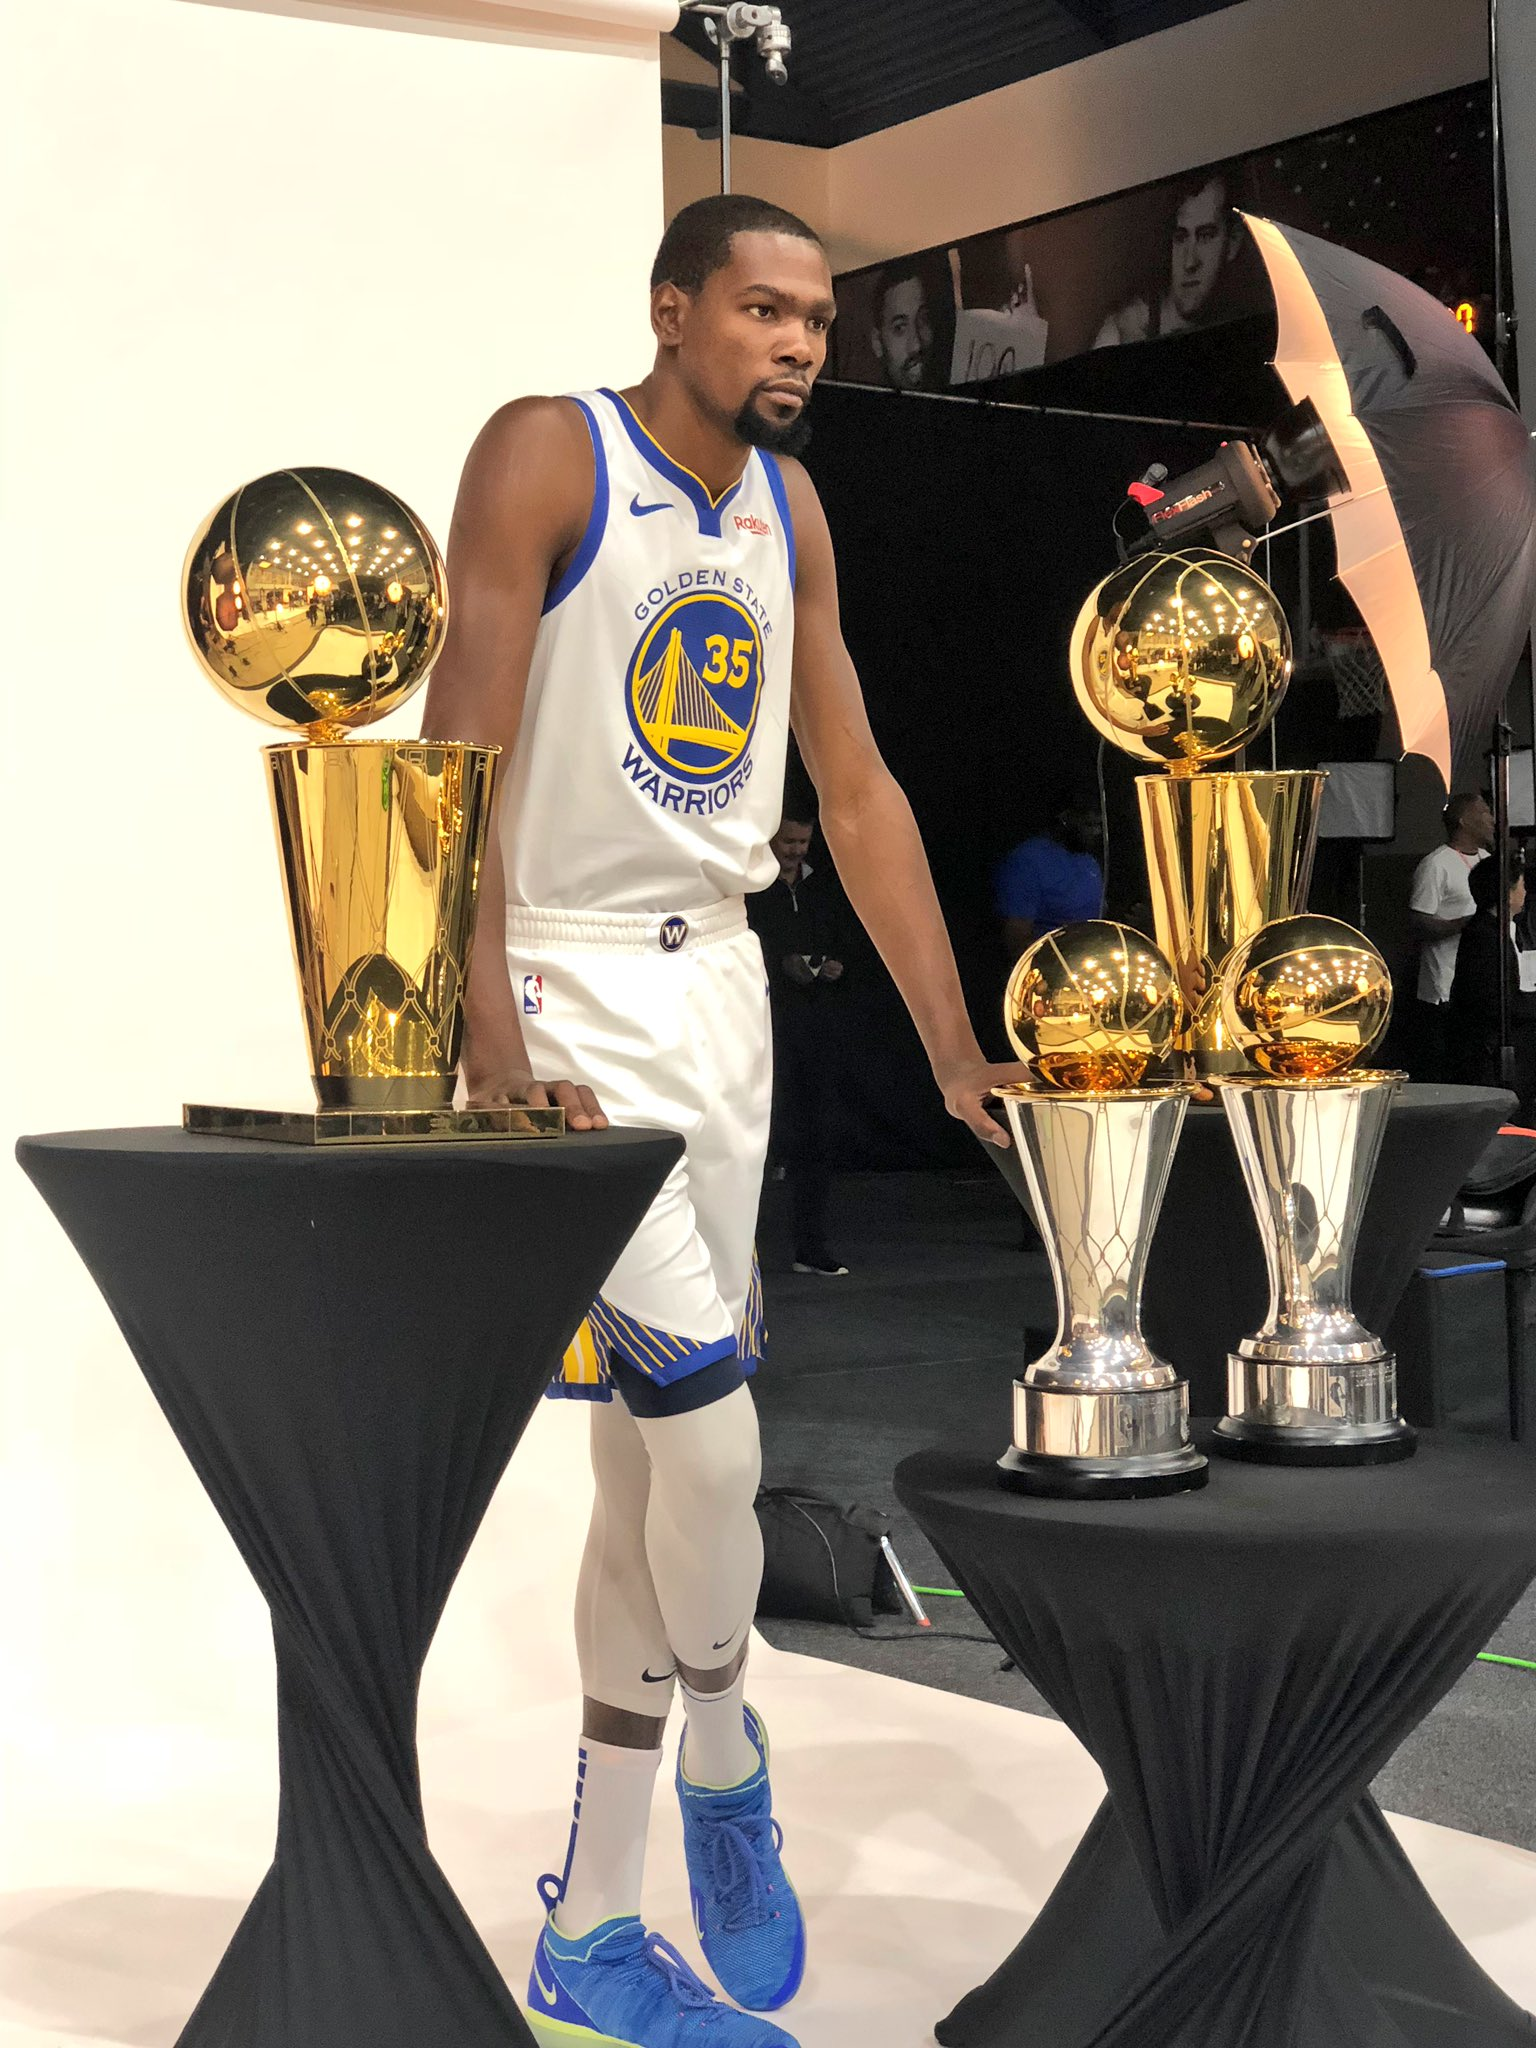 ����  Back-to-back #NBAFinals MVP... Kevin Durant! #NBAMediaDay https://t.co/ezgtRr918s